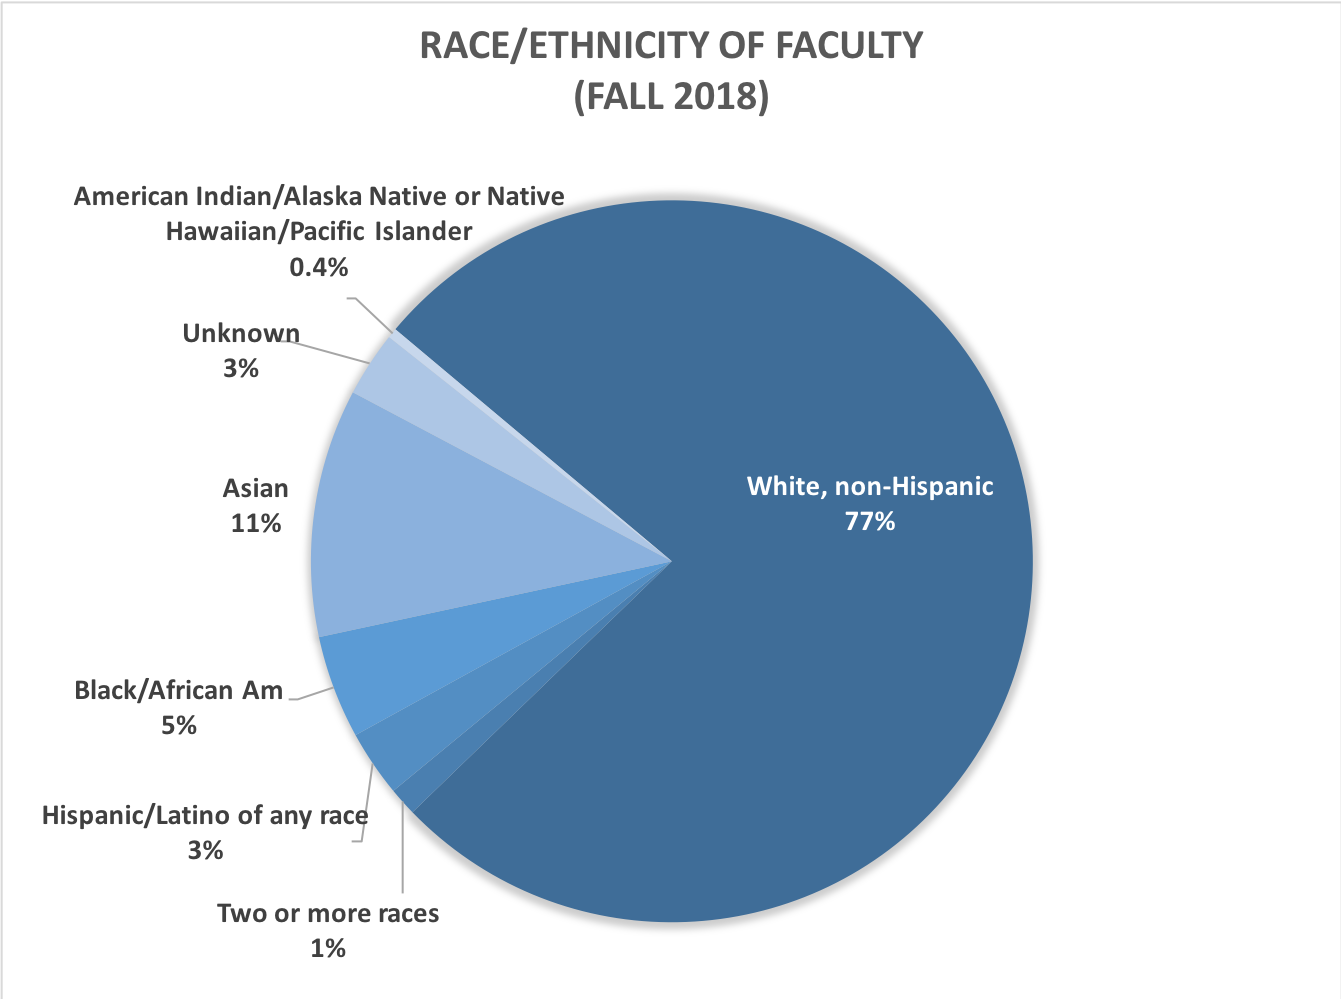 Race and ethnicity of faculty